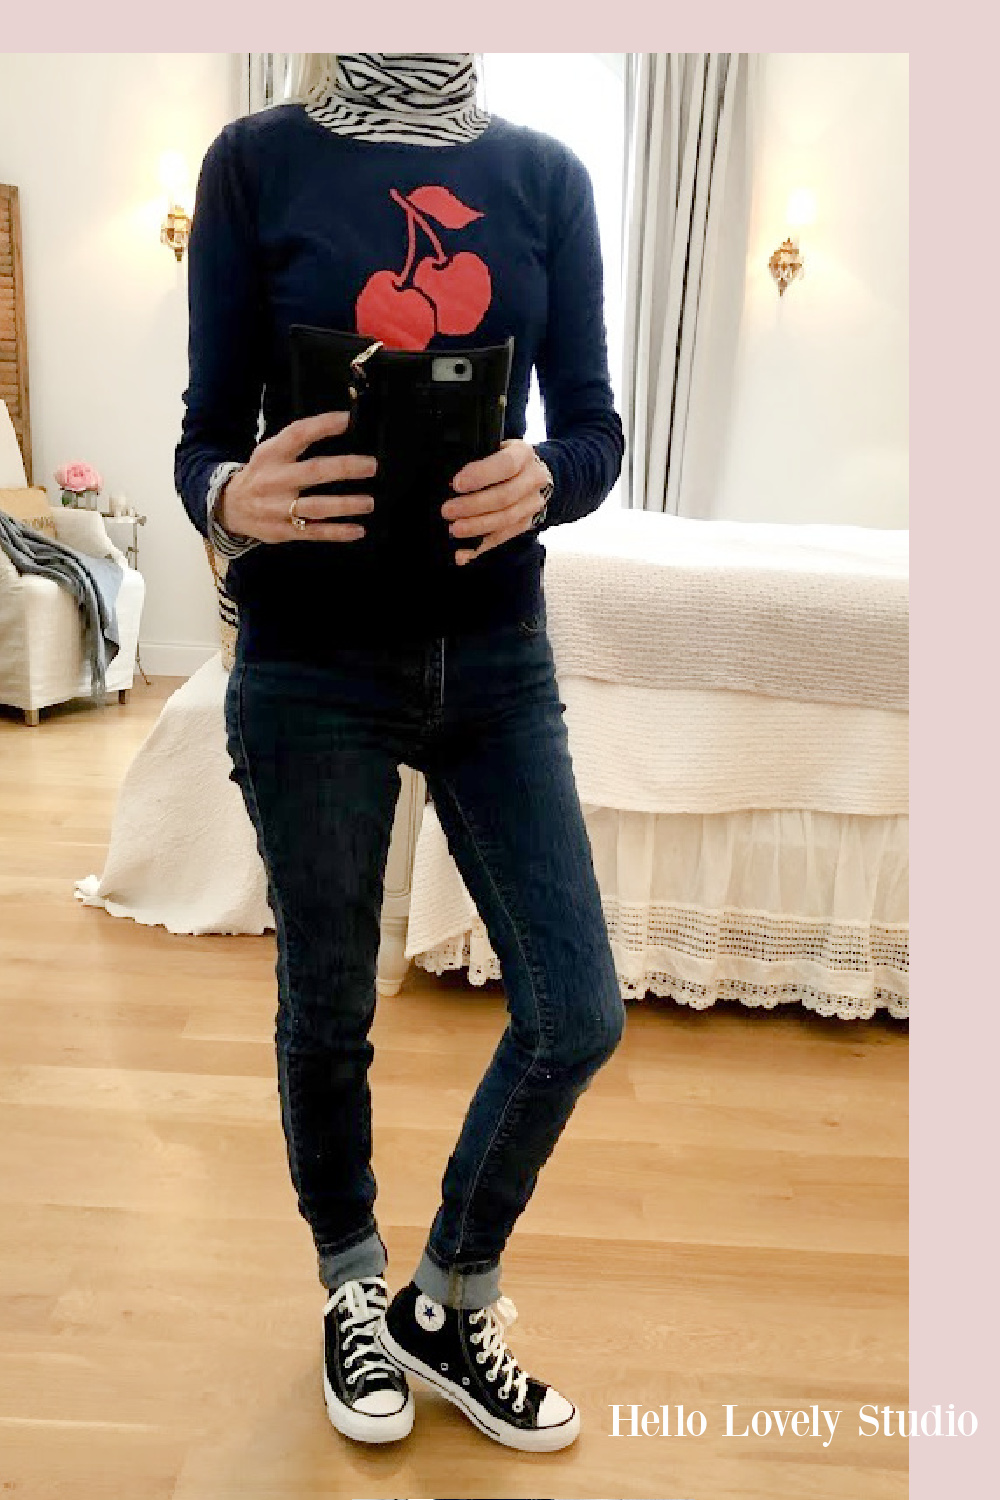 Hello Lovely Studio casual winter fashion over 50 - navy cherry sweater, jeans and Converse high tops. #fashionover50 #casual #navy